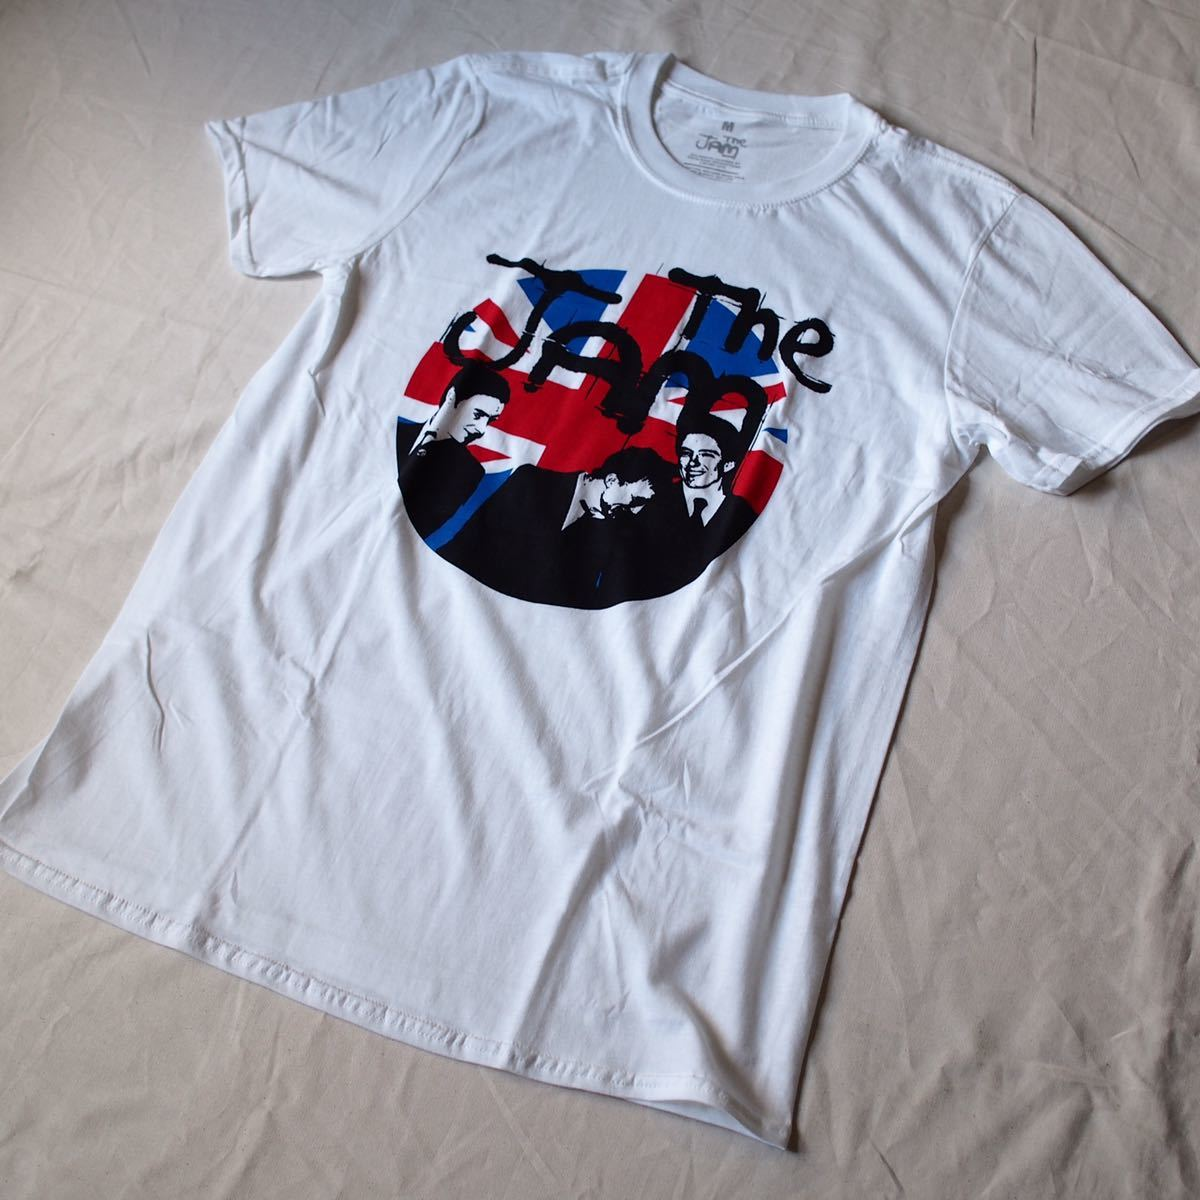 Official[The Jam]M ジャム Tシャツ バンド Nirvana Blur Sonic Youth oasis joy division Stone Roses The Cure Kinks Beatles clash_画像3